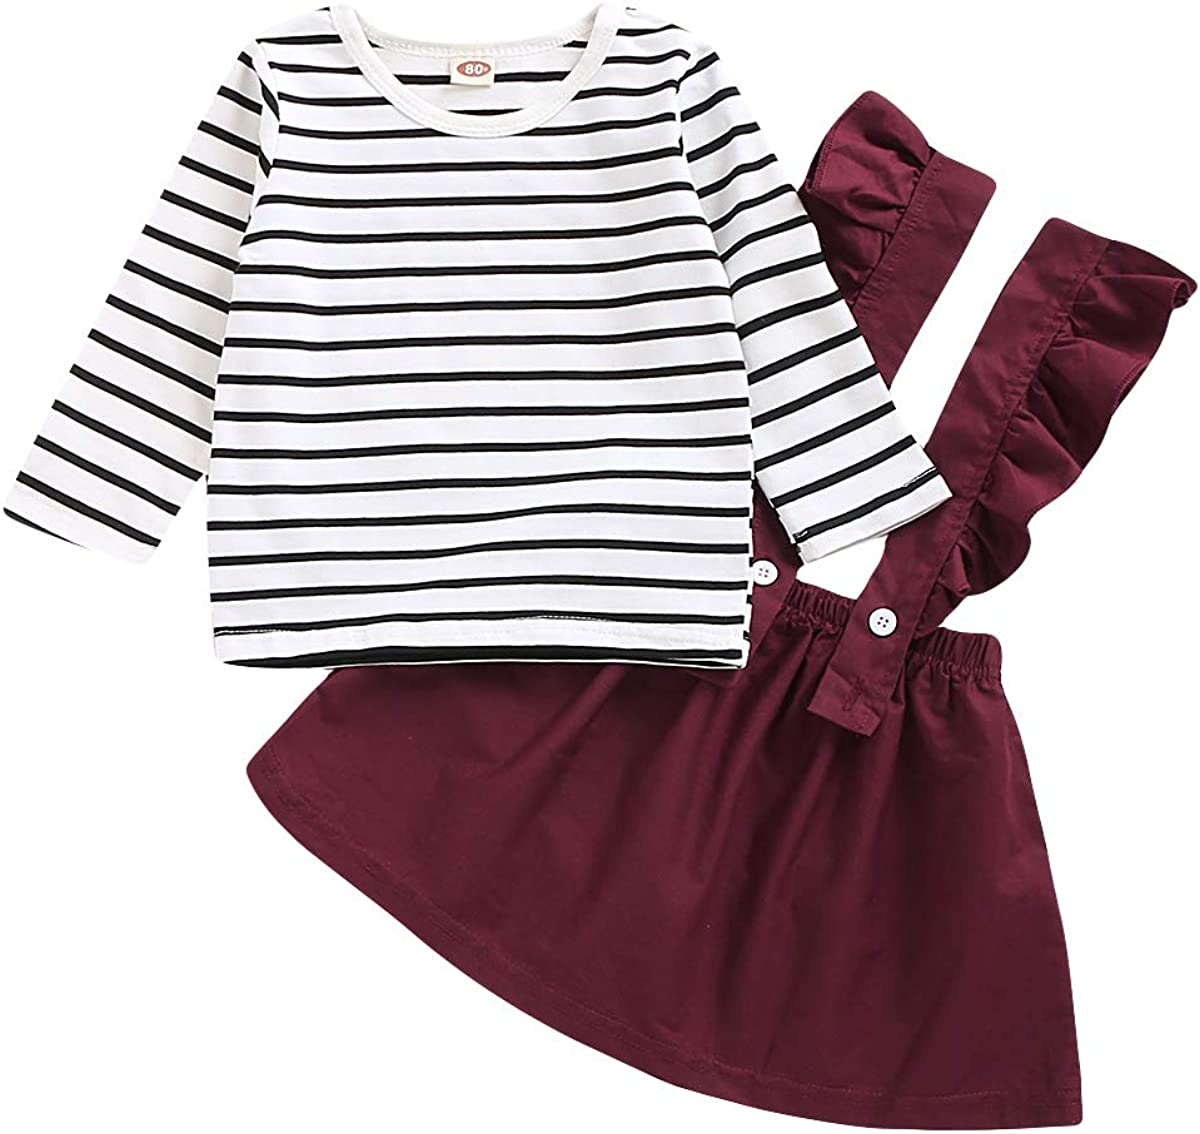 SOBOWO Toddler Baby Girl Outfits Suspender Skirt Sets Ruffle Long Sleeve Romper Top Overall Dress Fall Winter Clothes